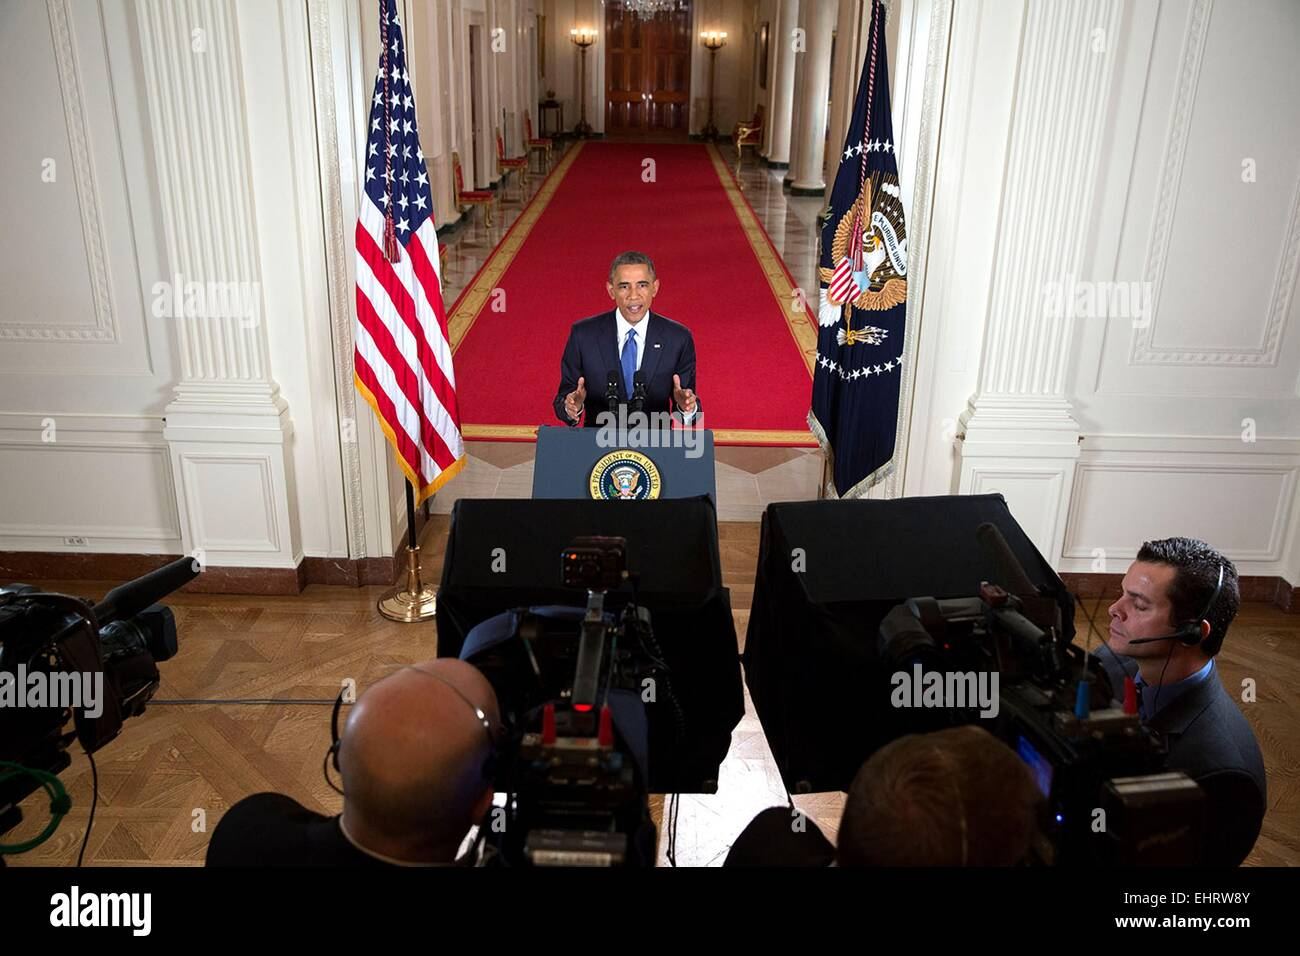 US President Barack Obama delivers an address to the nation on immigration from the East Room of the White House - Stock Image